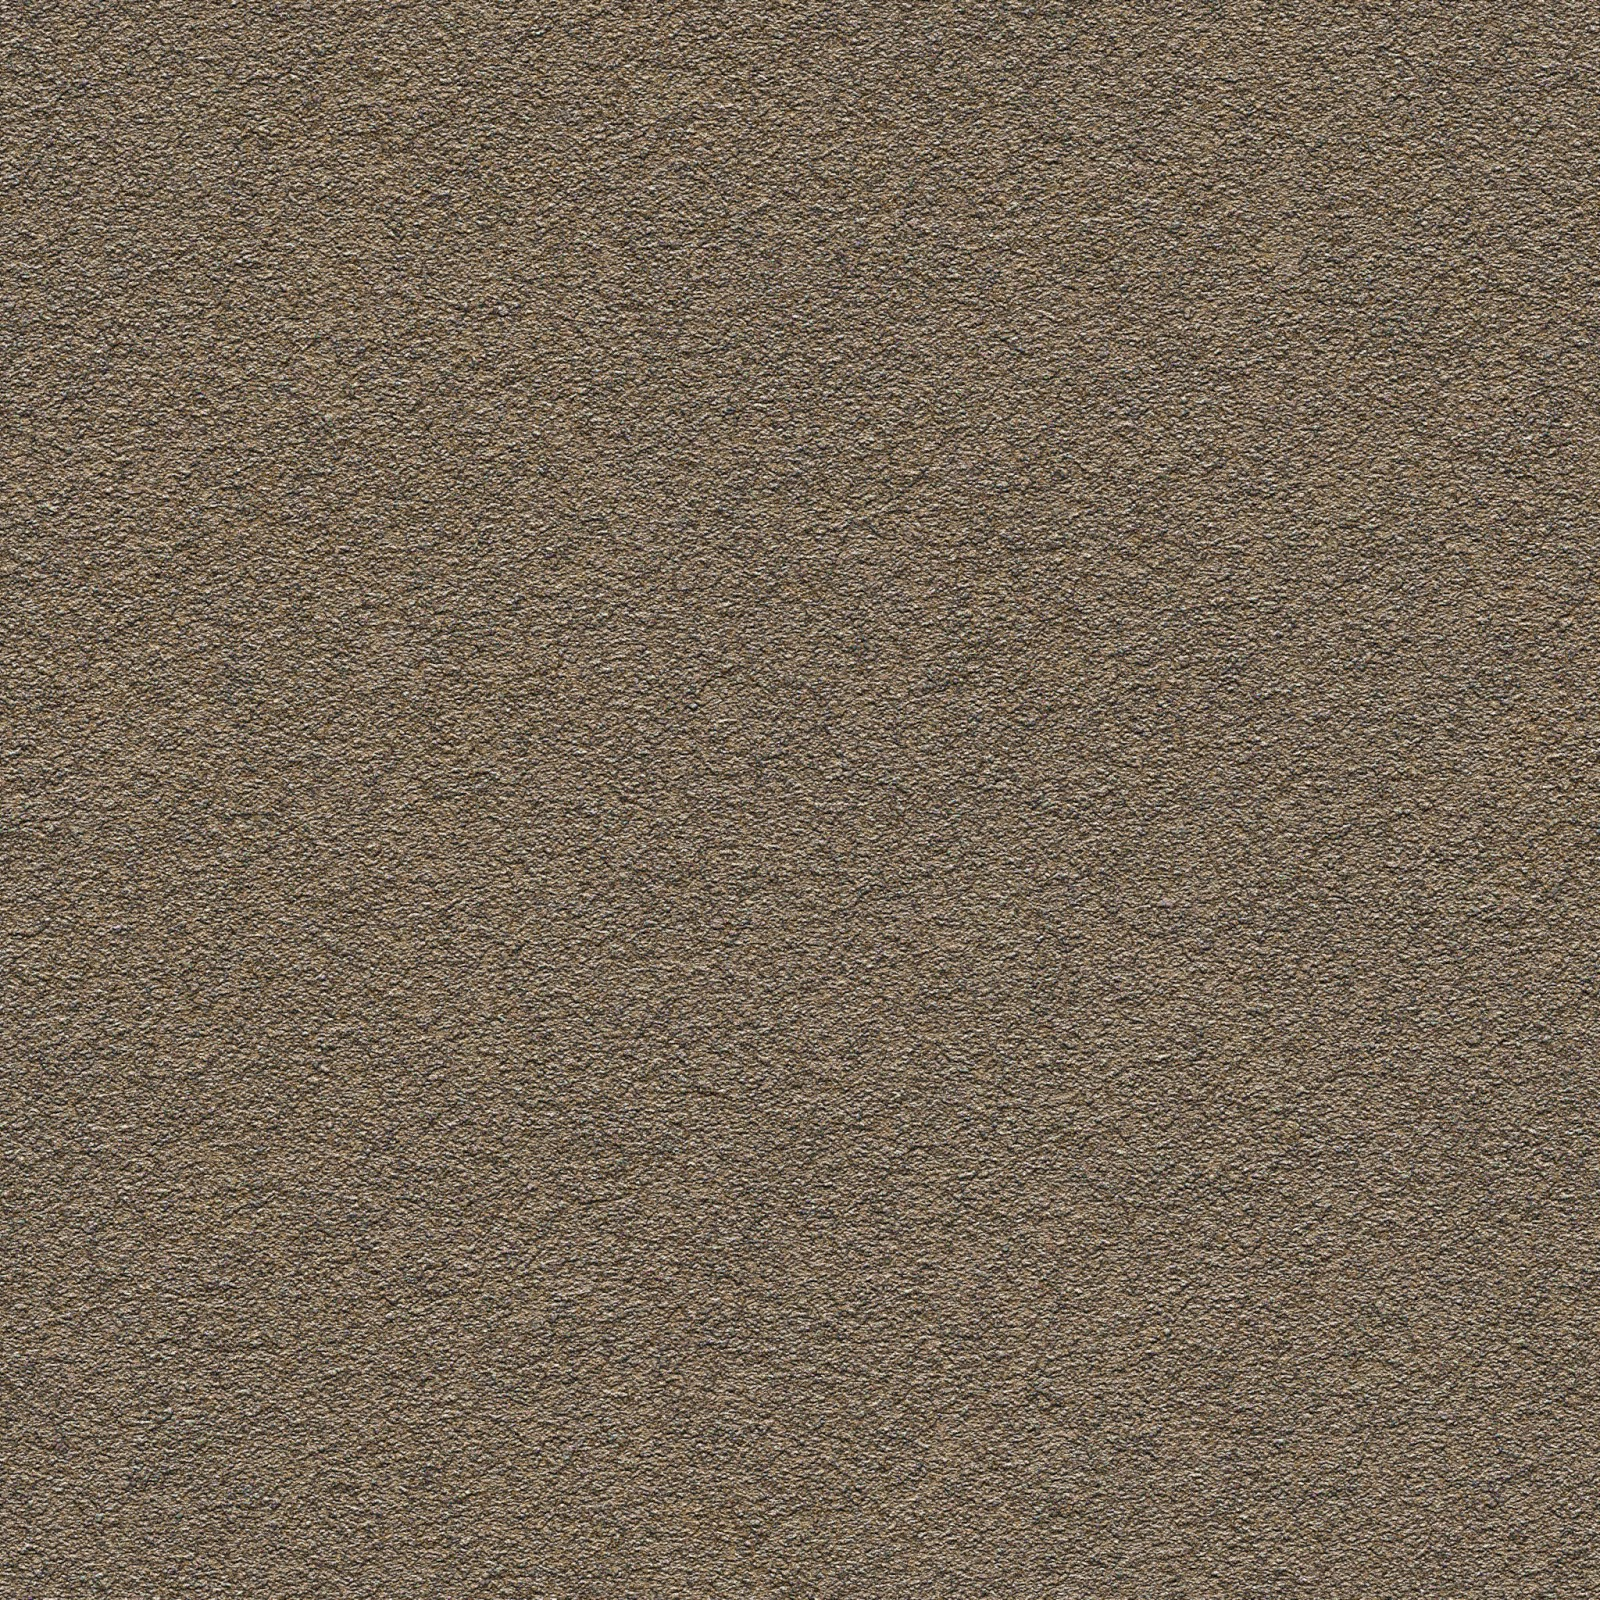 Tarmac_road_surface_asphalt_ground_texture_seamless_tileable